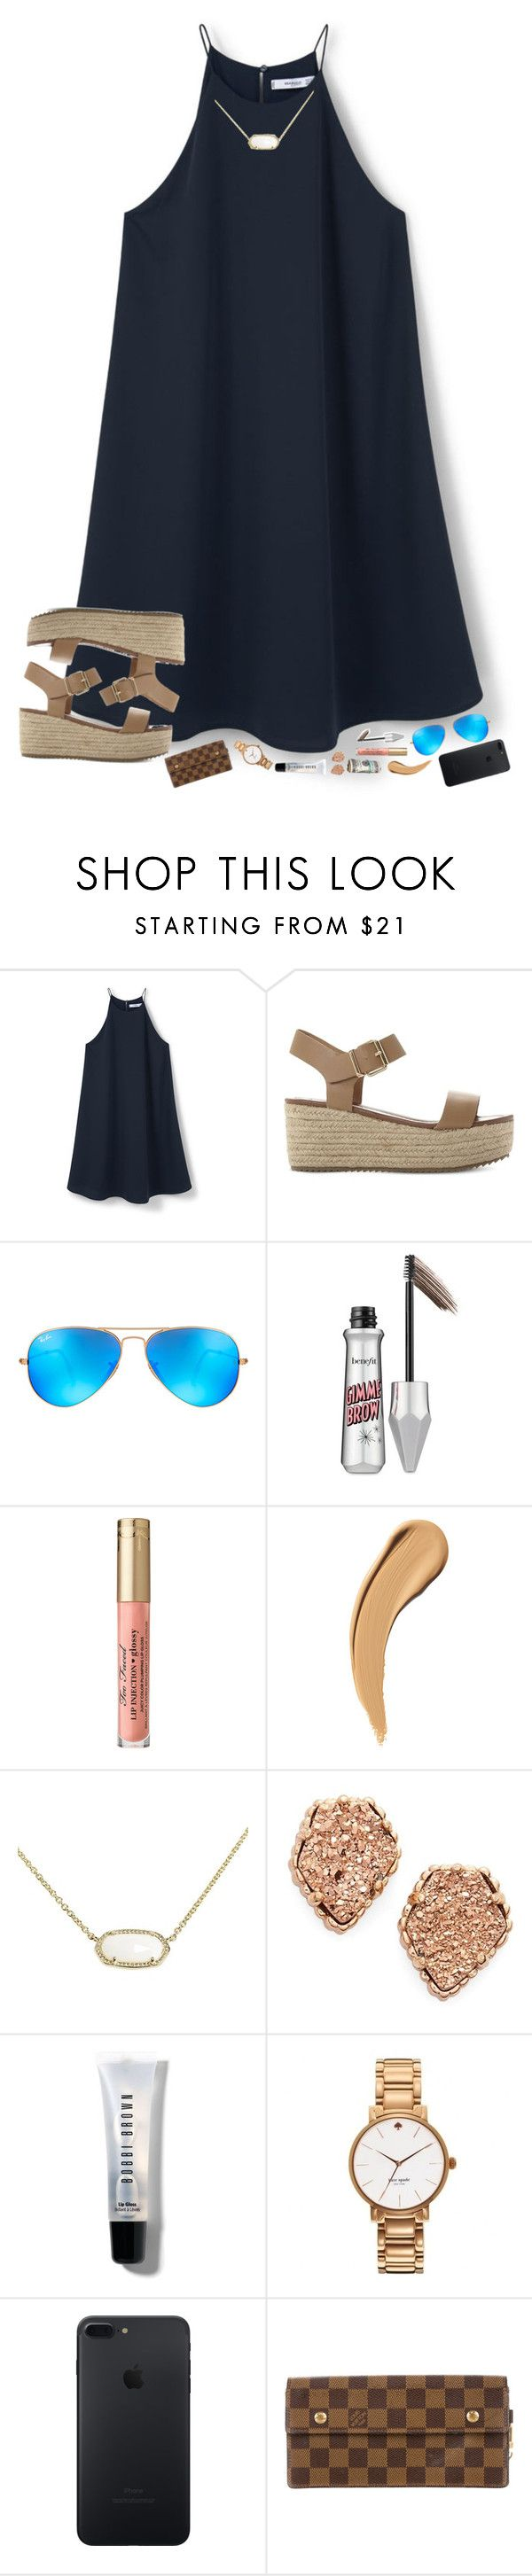 """really want to go to the KLOVE Christmas concert "" by hopemarlee ❤ liked on Polyvore featuring MANGO, Steve Madden, Ray-Ban, Benefit, Kendra Scott, Bobbi Brown Cosmetics, Kate Spade and Louis Vuitton"